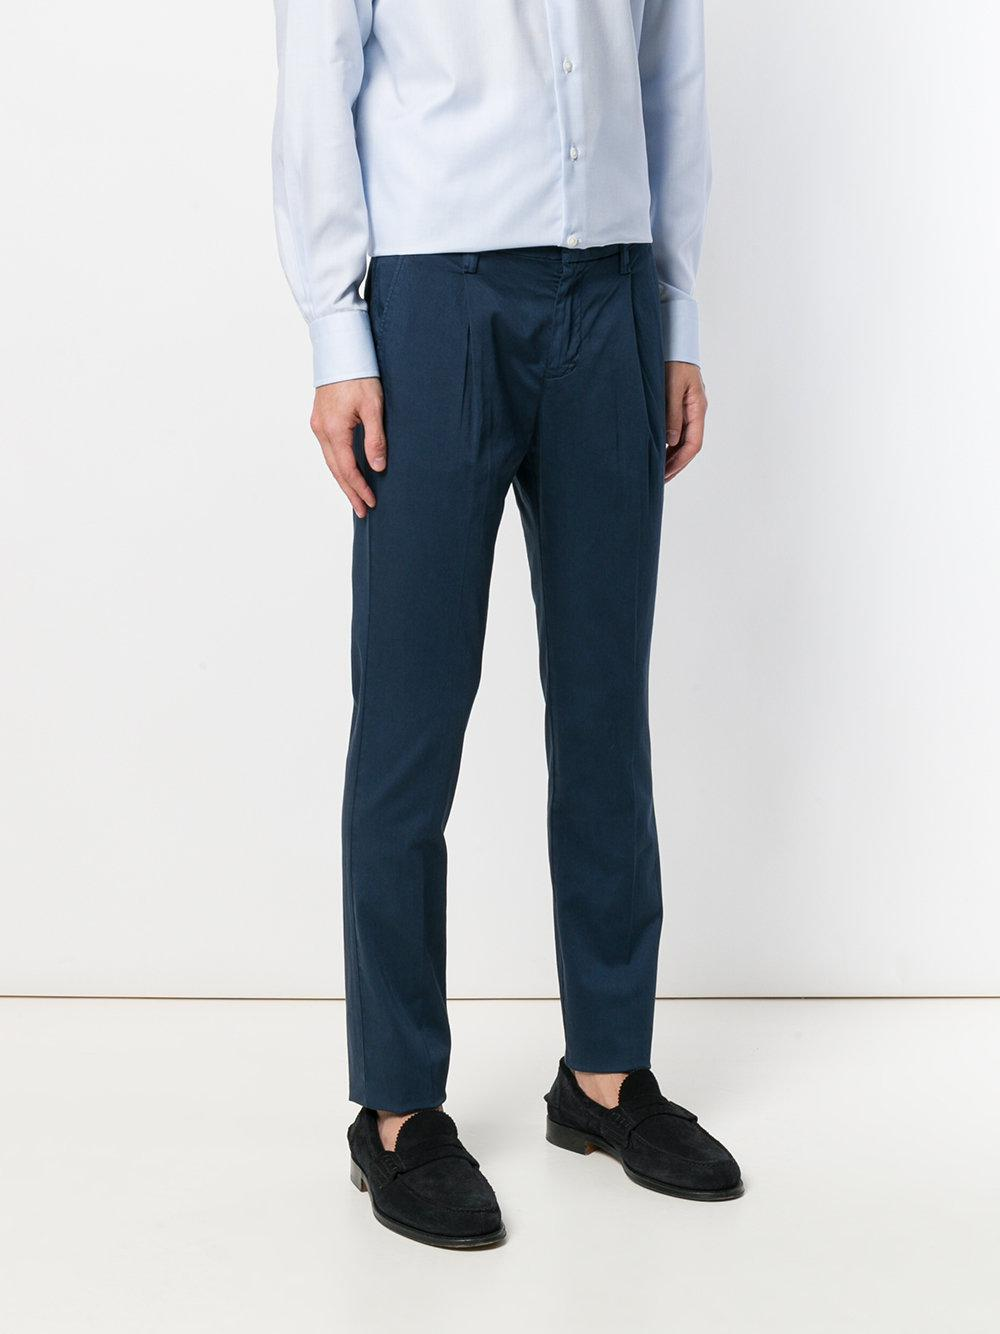 Entre Amis Cotton Straight Fit Trousers in Blue for Men